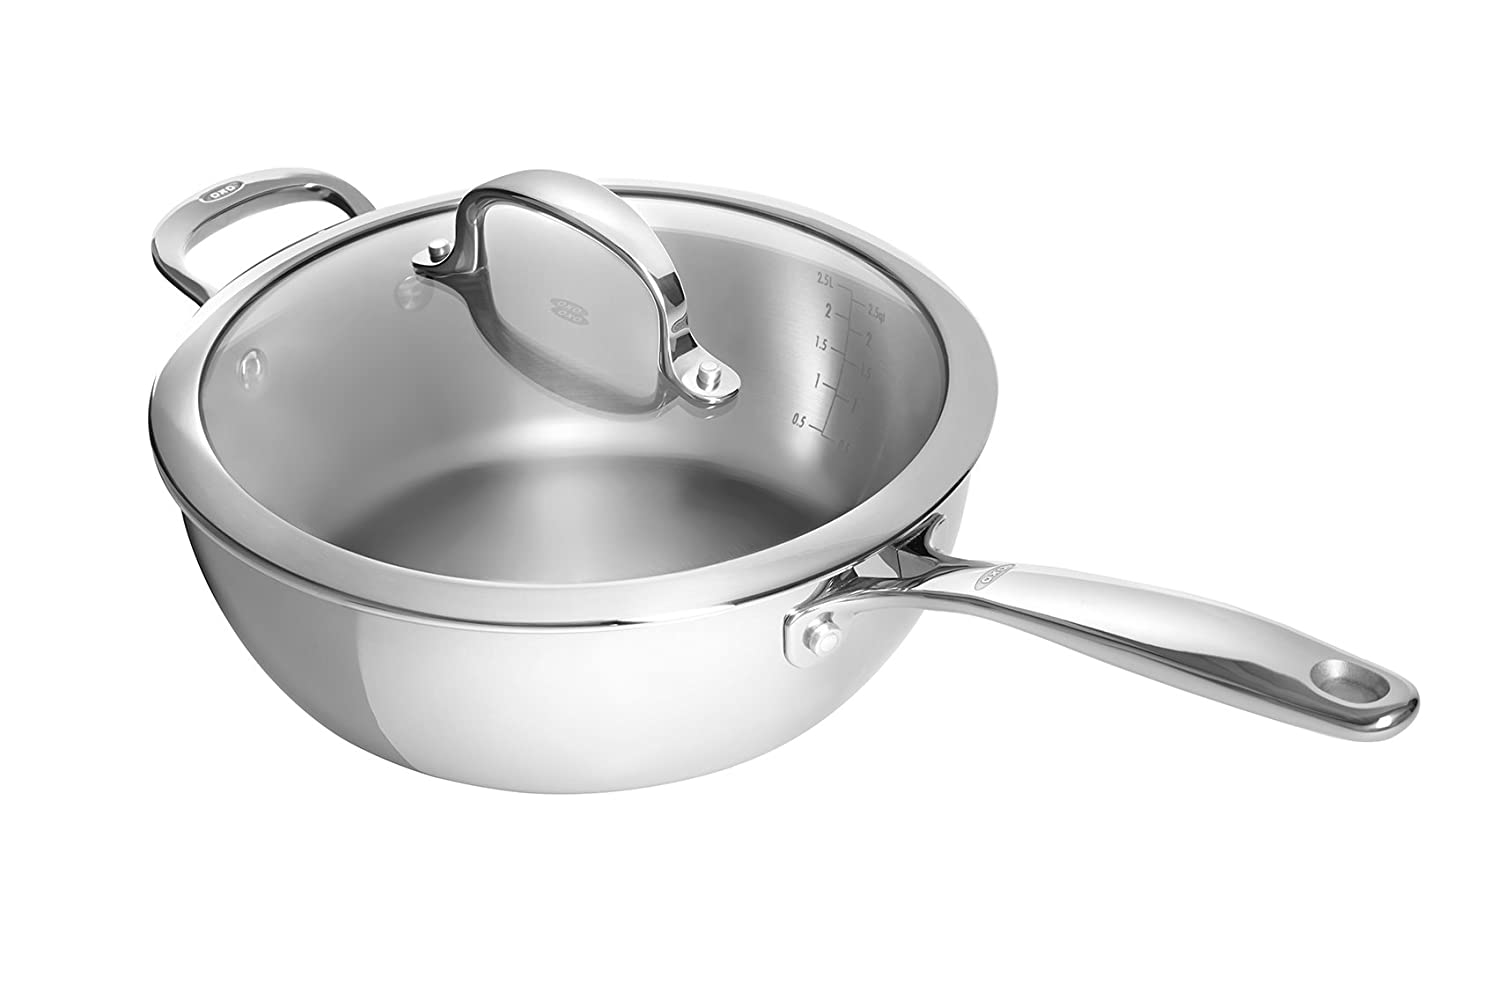 Oxo Good Grips Tri Ply Stainless Steel Pro 3.5 Qt Covered Saucepan by Oxo